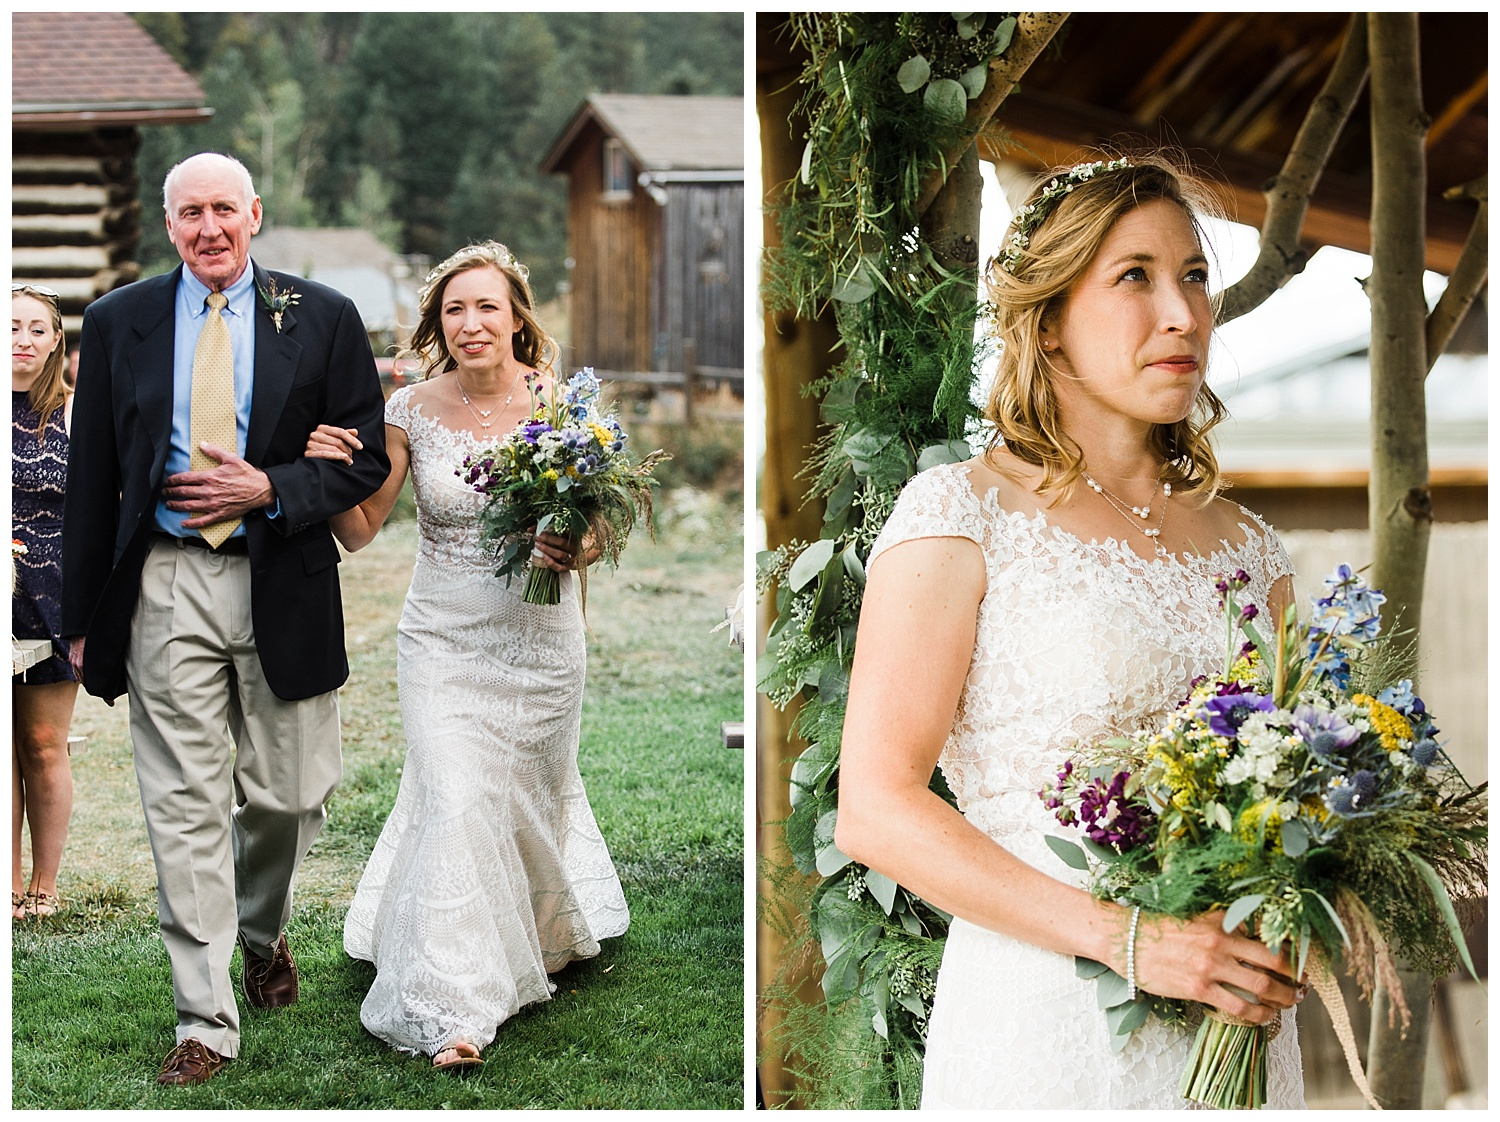 Gold_Hill_Inn_Wedding_Boulder_CO_Apollo_Fields_450.jpg